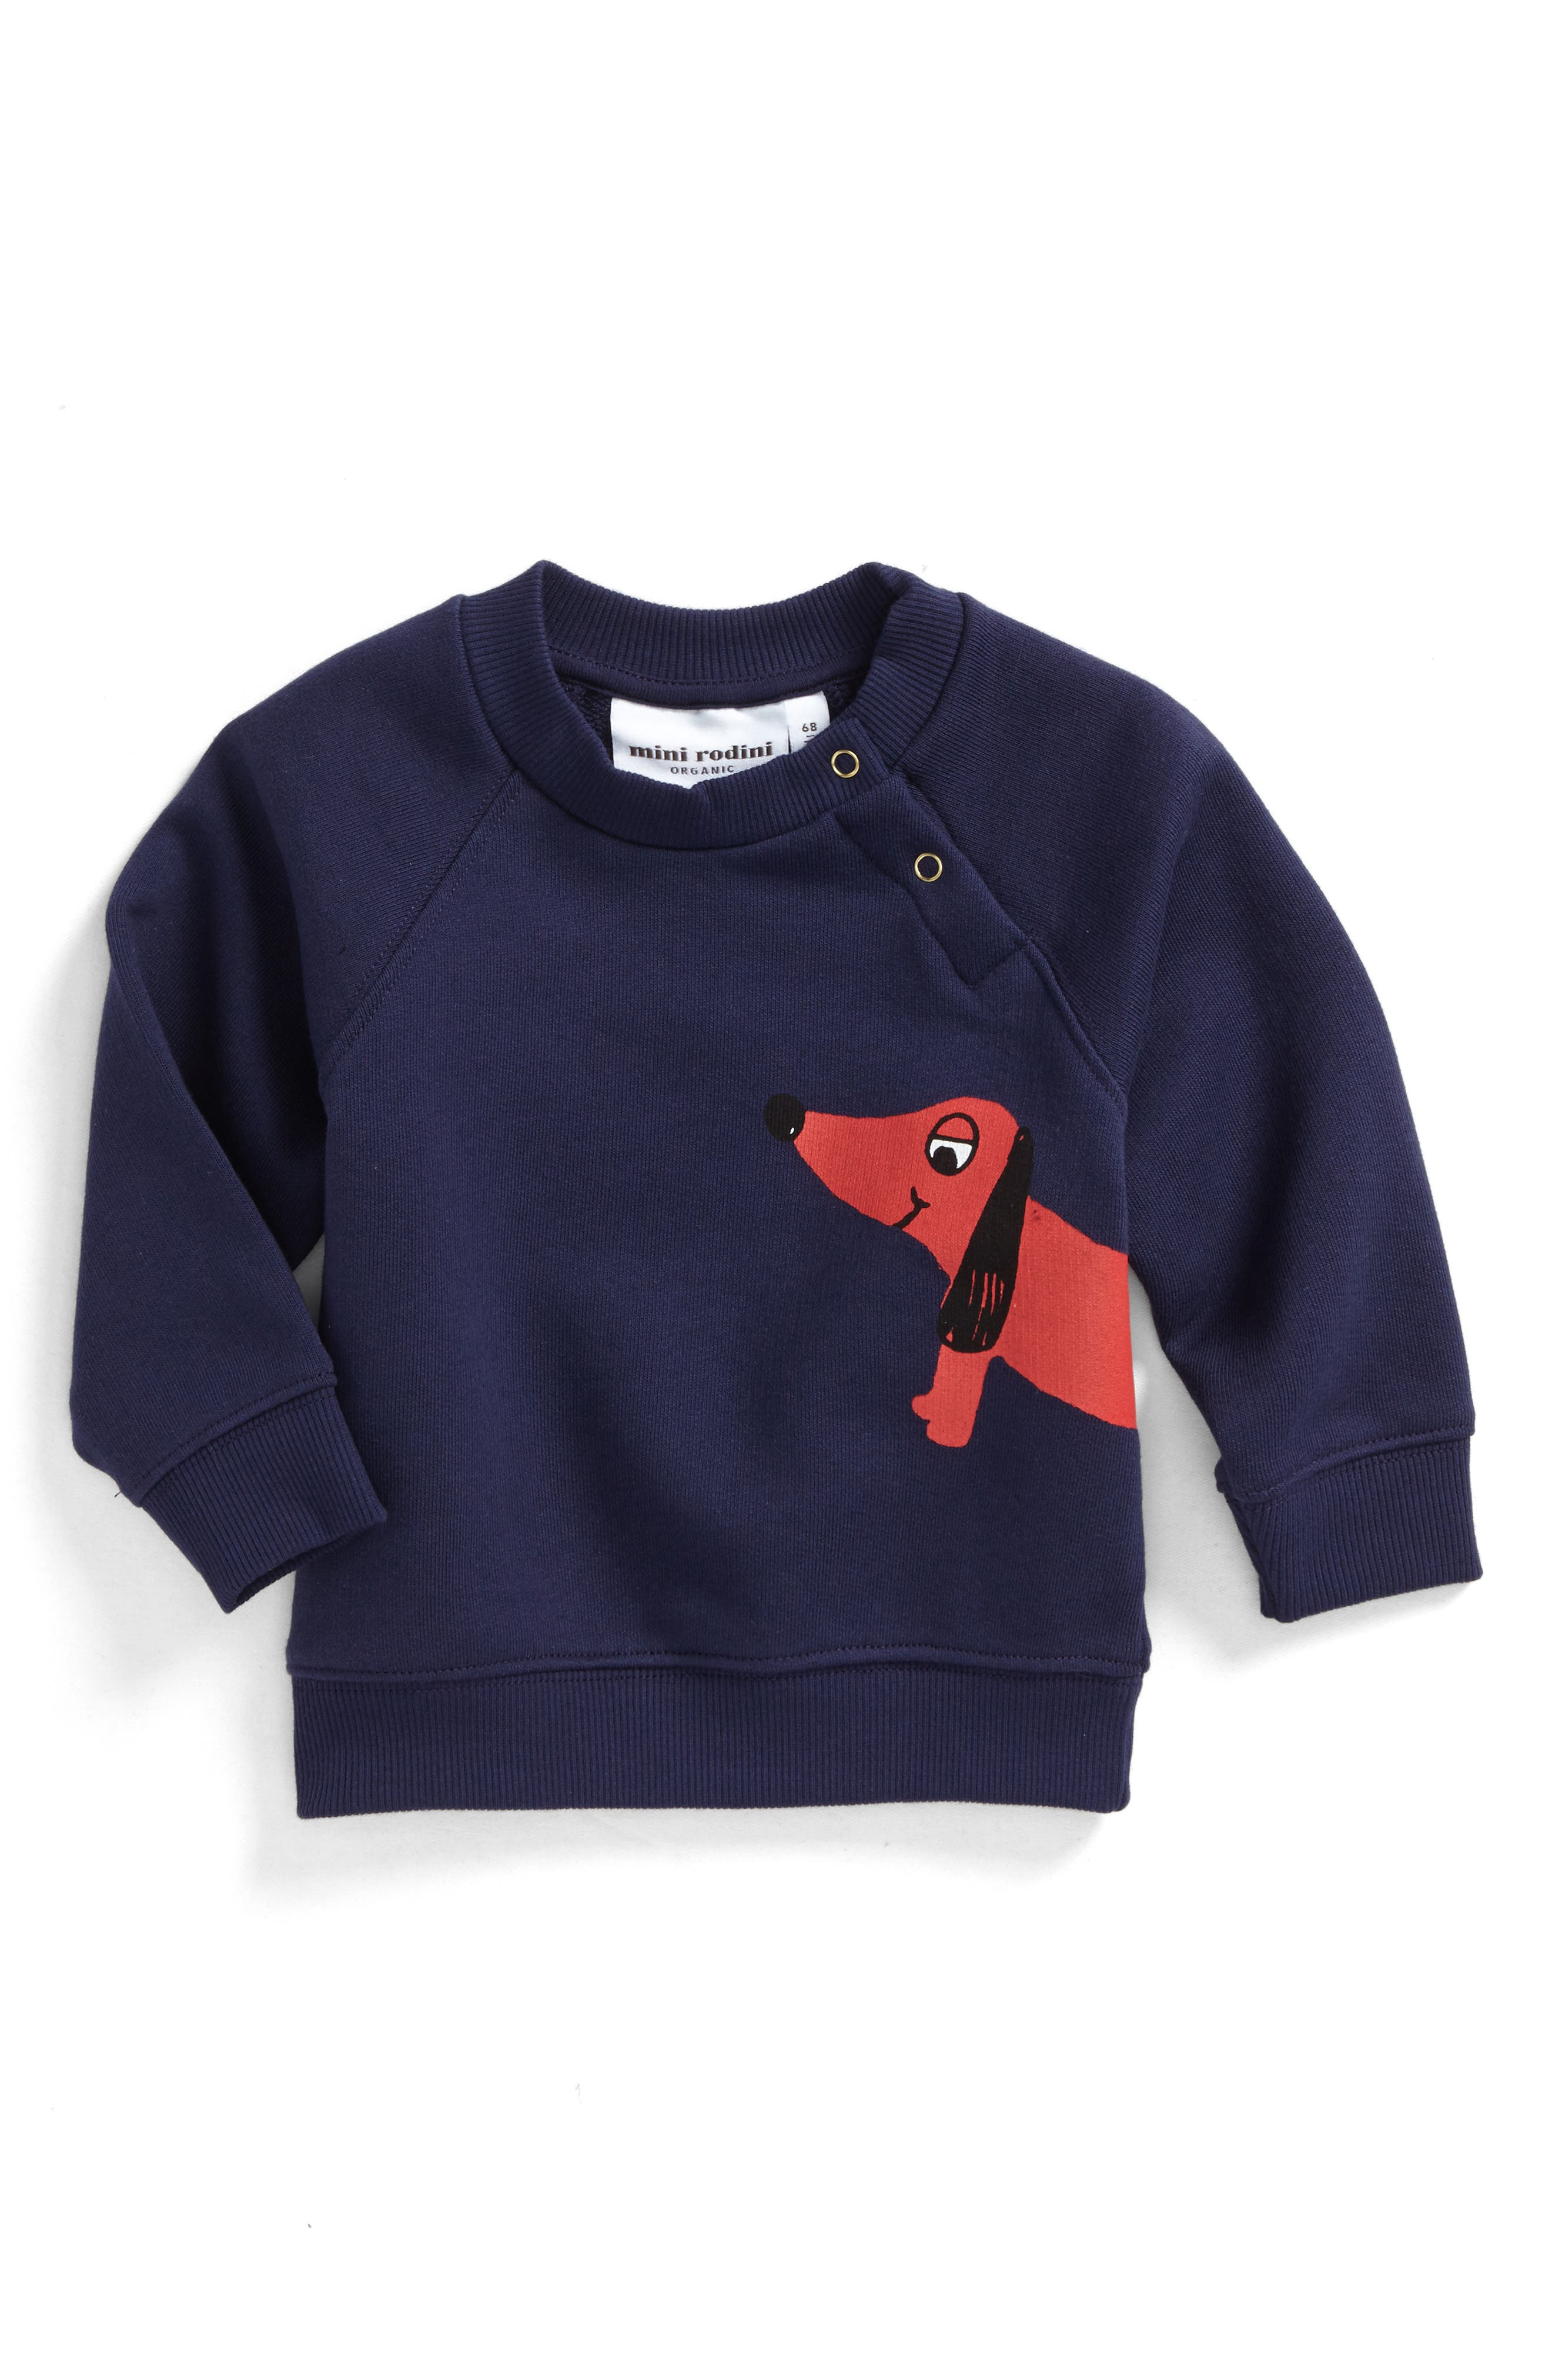 Dog Sweatshirt,                             Main thumbnail 1, color,                             410